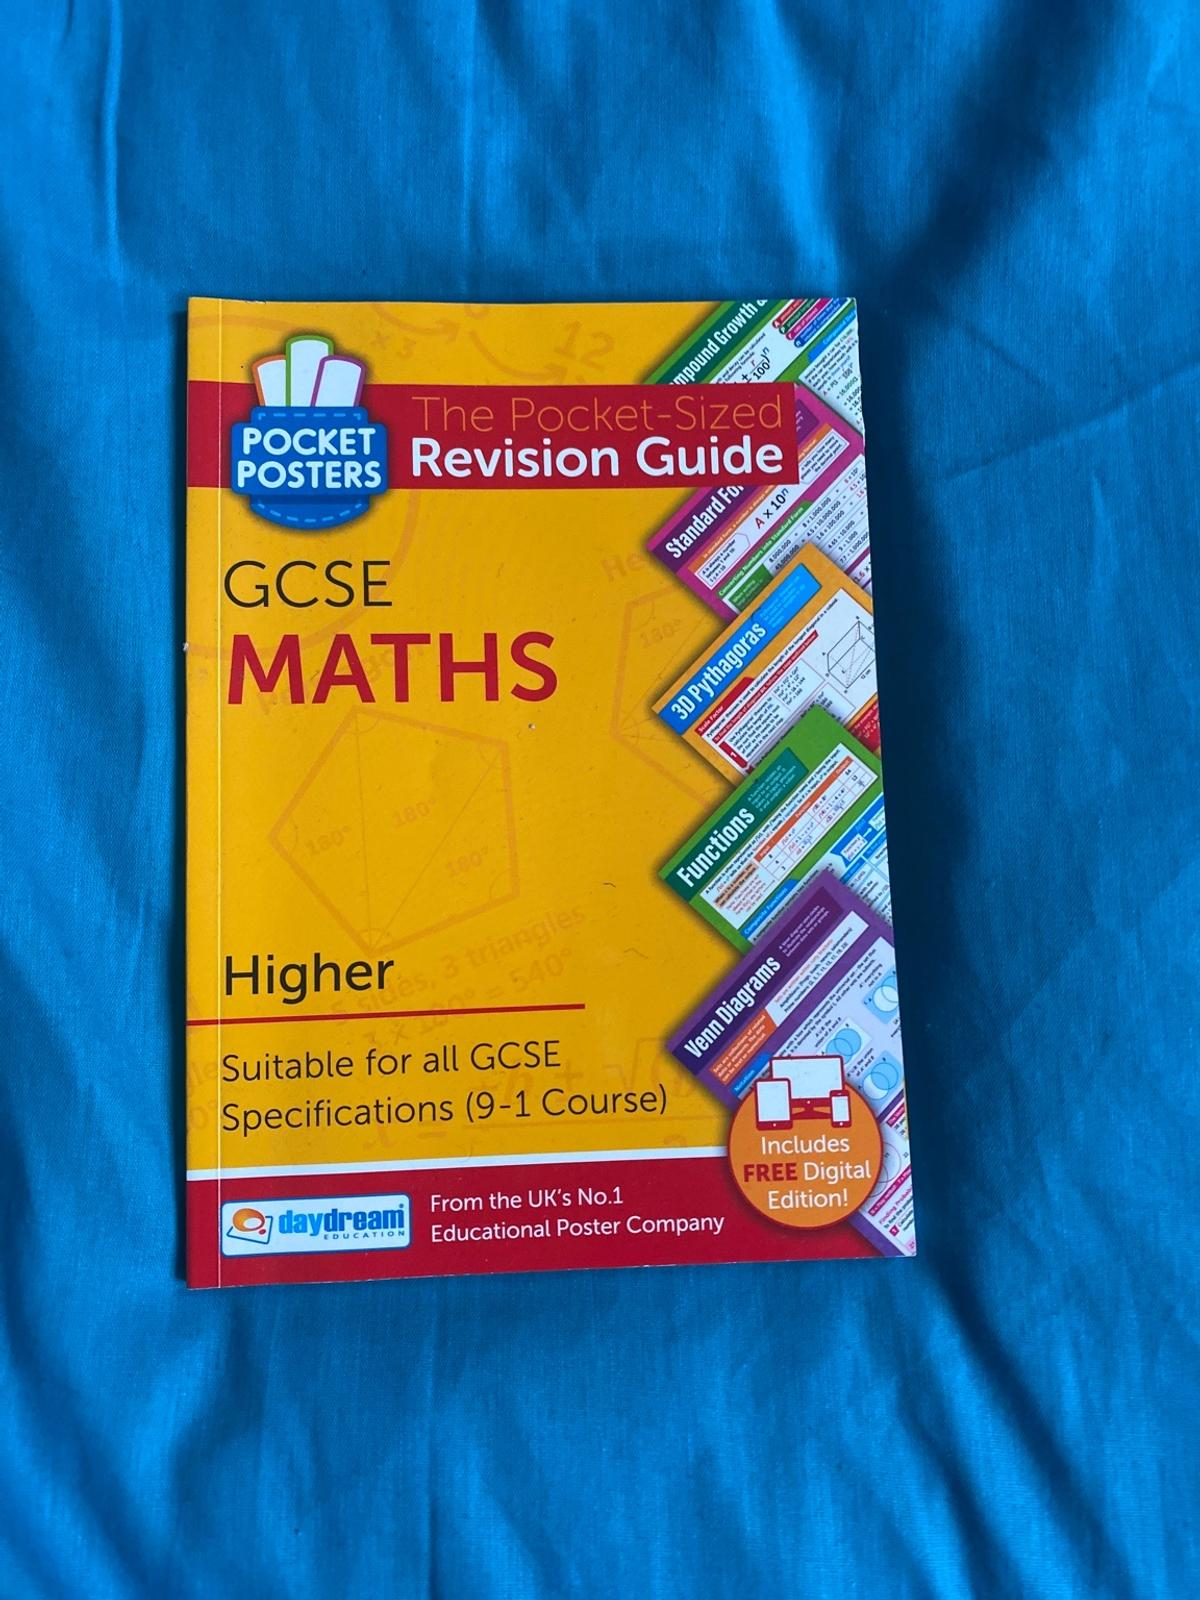 Revision guide Comes with interactive app Barely used